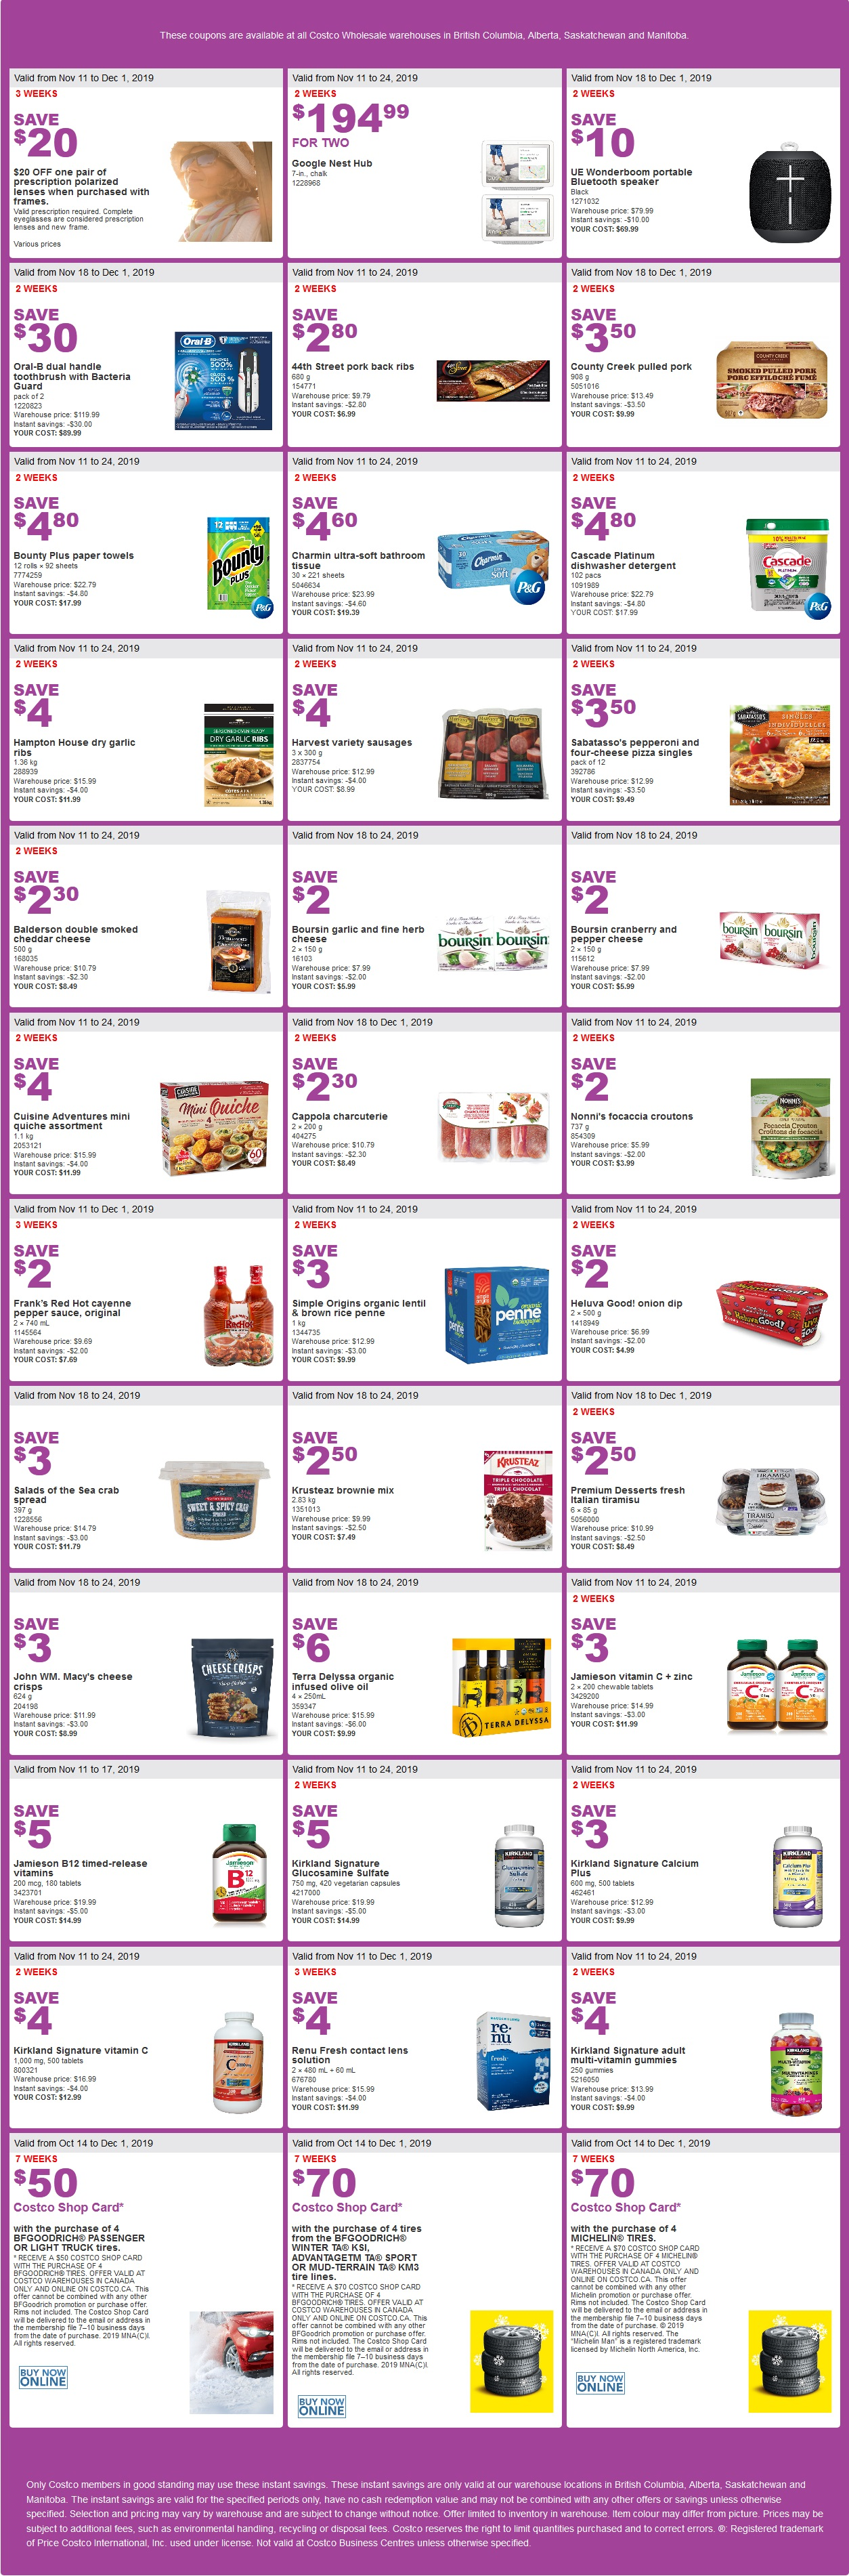 Costco Flyer Items for Oct Nov 18-24 2019 for BC, AB, SK, MB